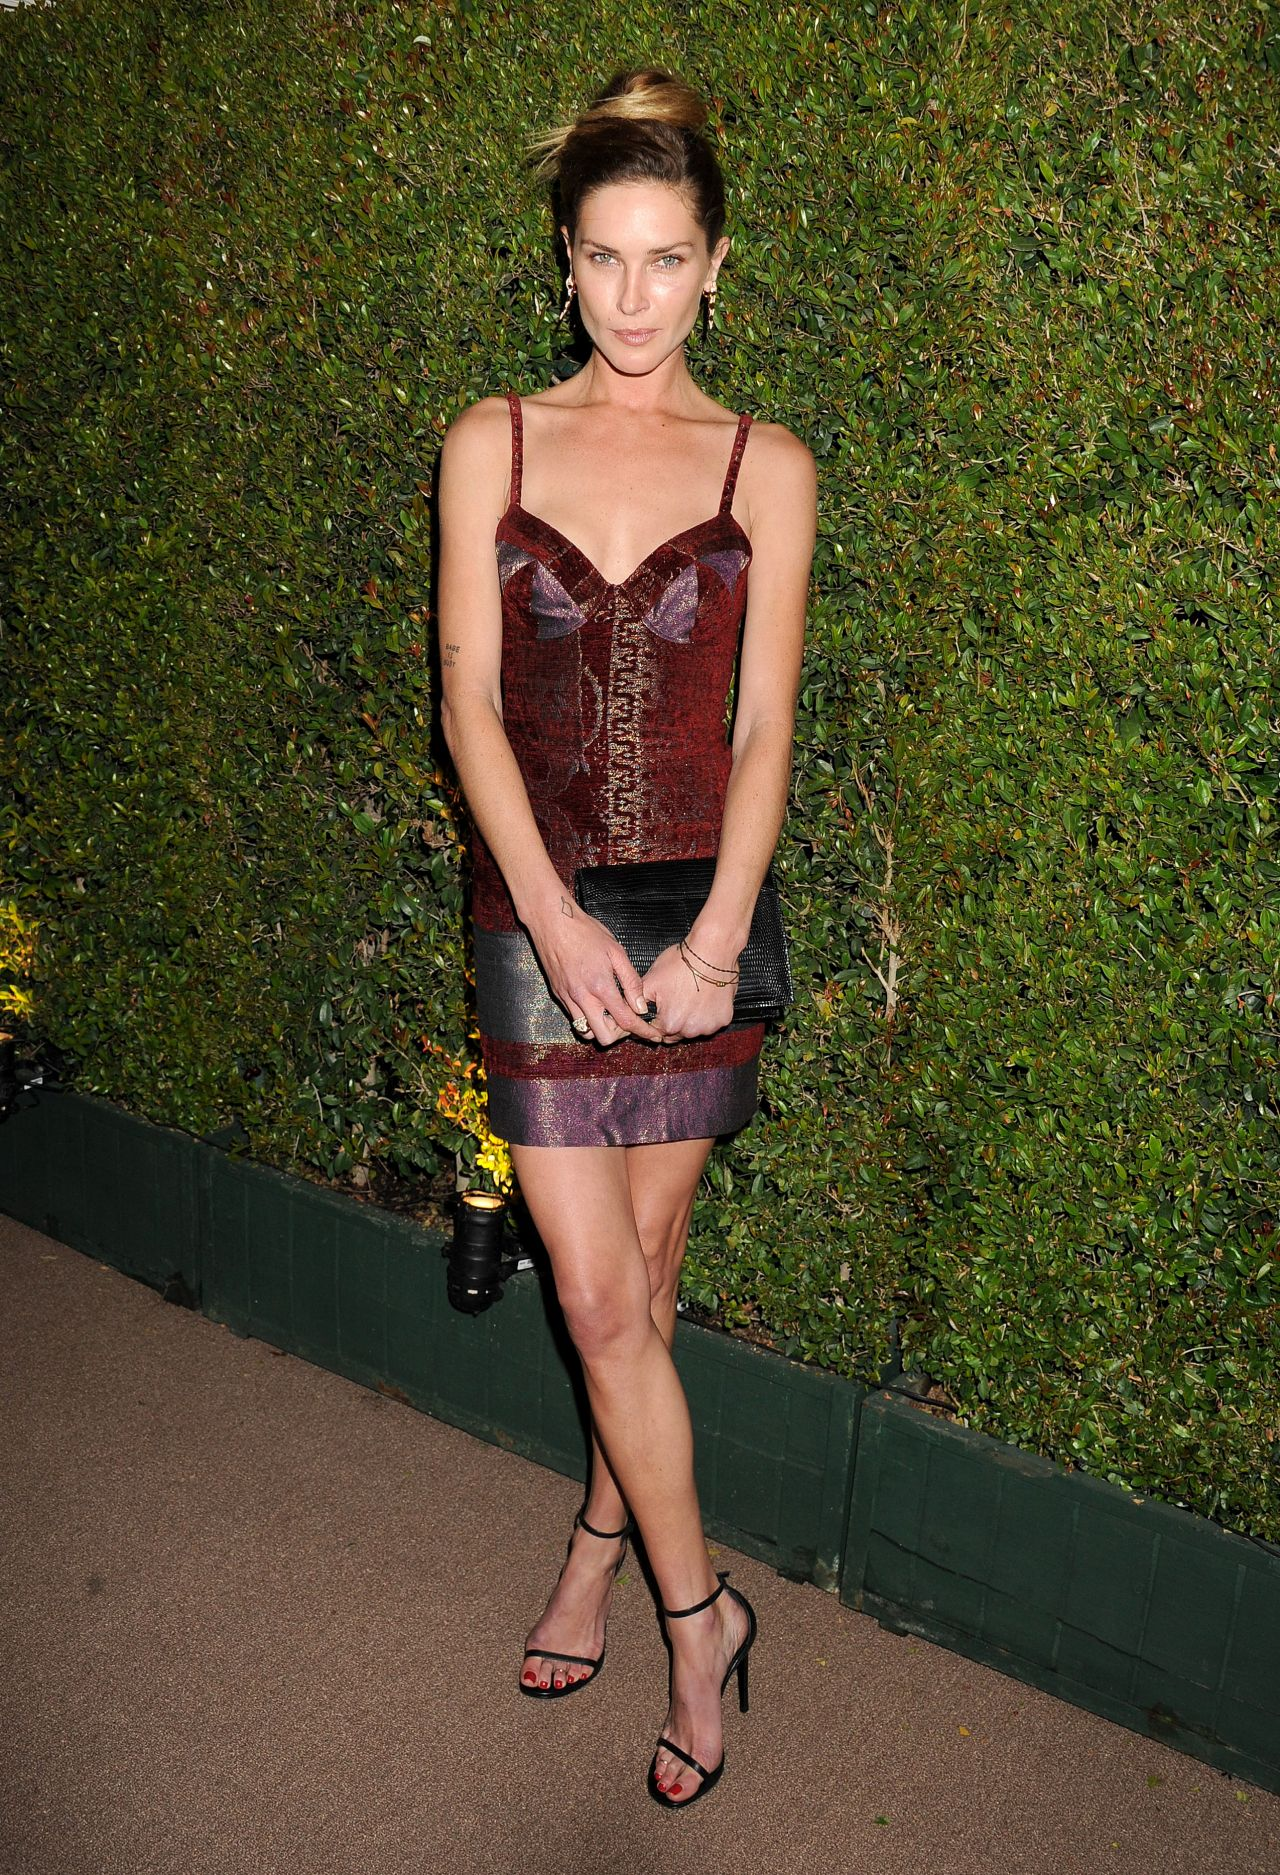 Maryna Linchuk - Decades of Glamour Event - West Hollywood, February 2014